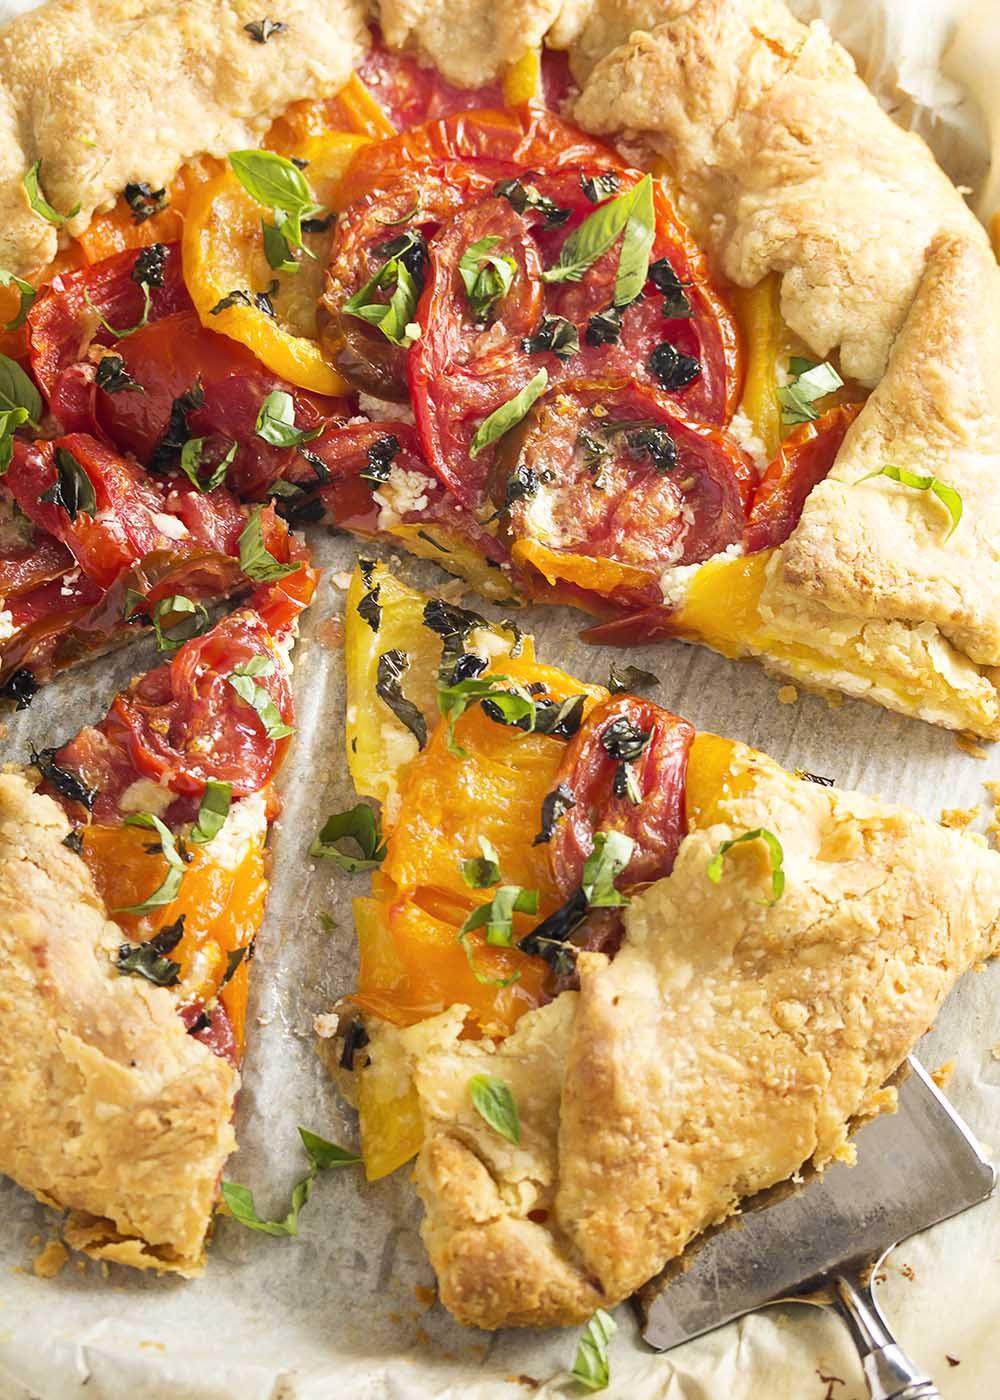 This savory tomato galette is a rustic tart in the French tradition, full of juicy, sweet heirloom tomatoes and creamy goat cheese and then folded into a simple pastry crust. | justalittlebitofbacon.com